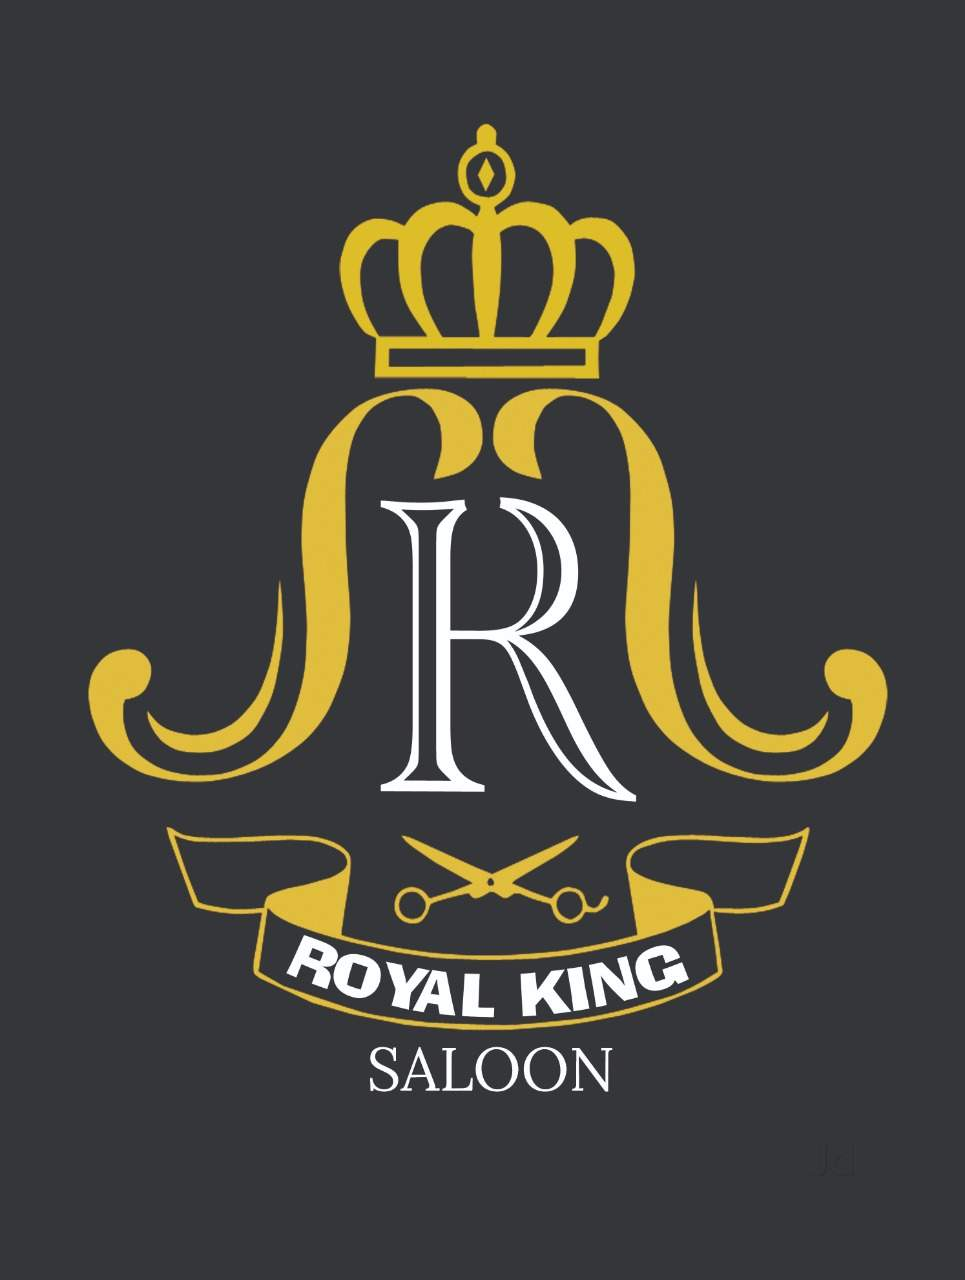 Royal King Salon Vesu Beauty Parlours In Surat Justdial The site owner hides the web page description. royal king salon vesu beauty